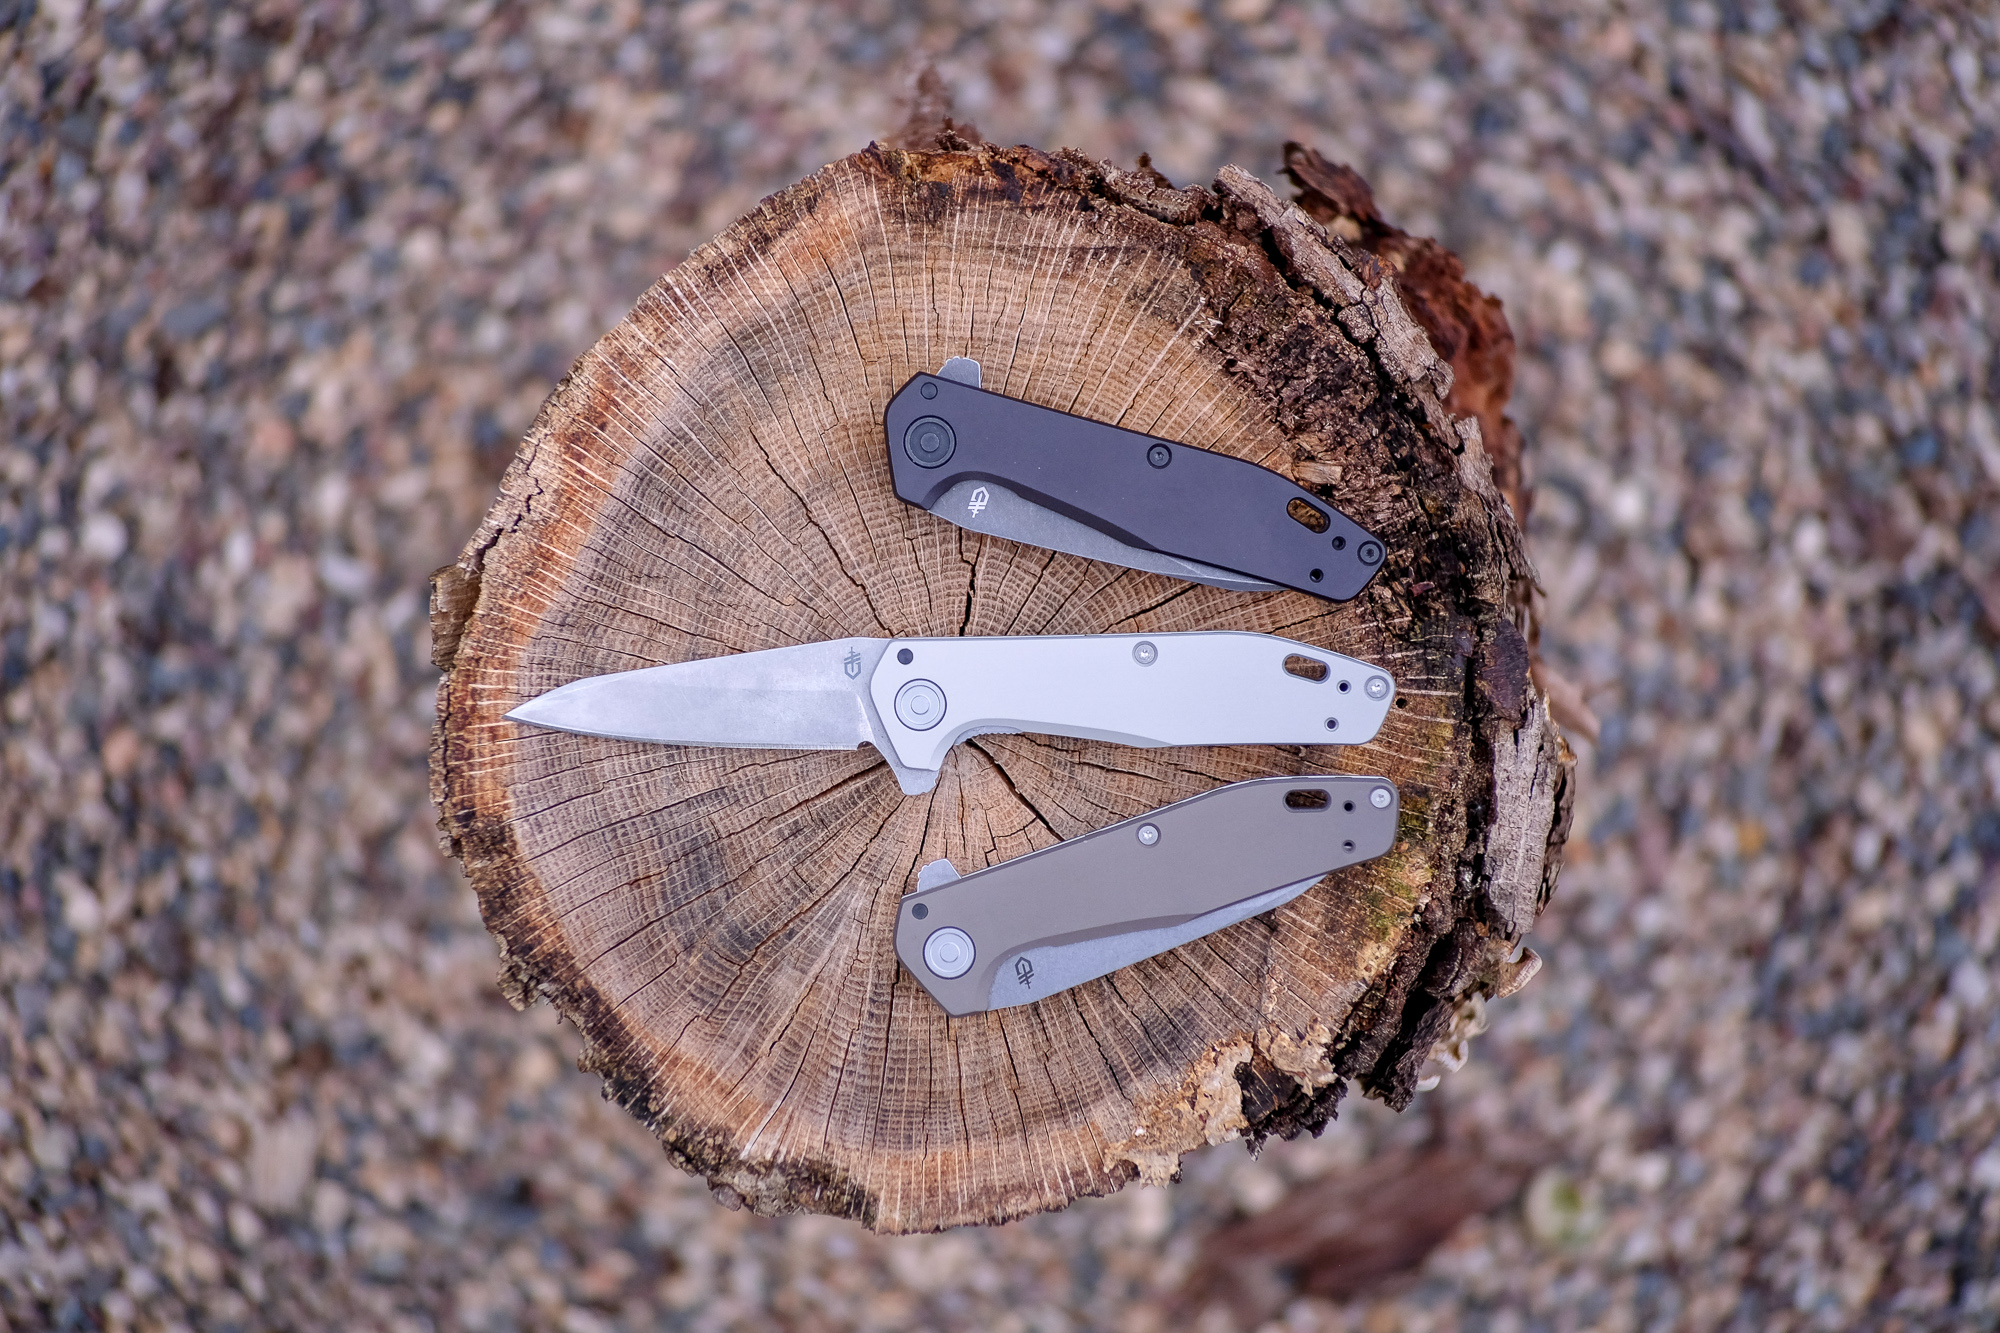 Gerber Fastball knife all colors on stump